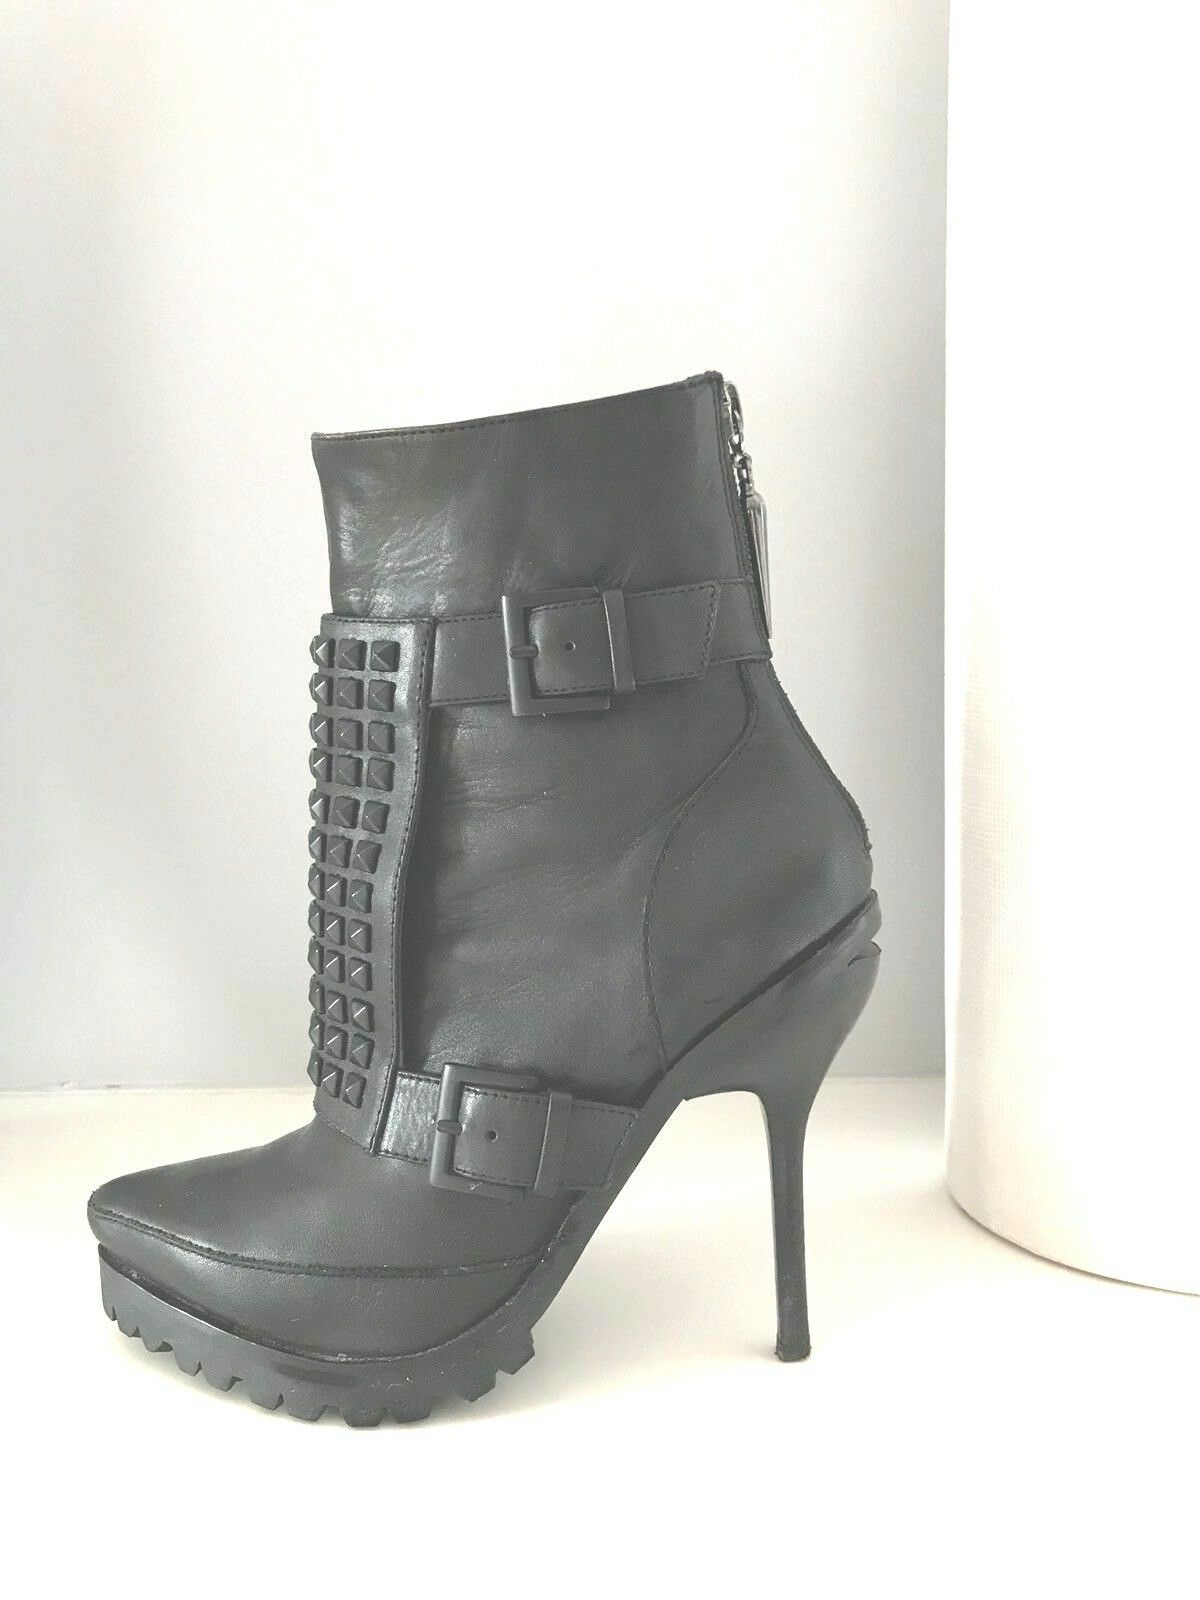 Rock And Republic Studded Lug Boot size 5/35